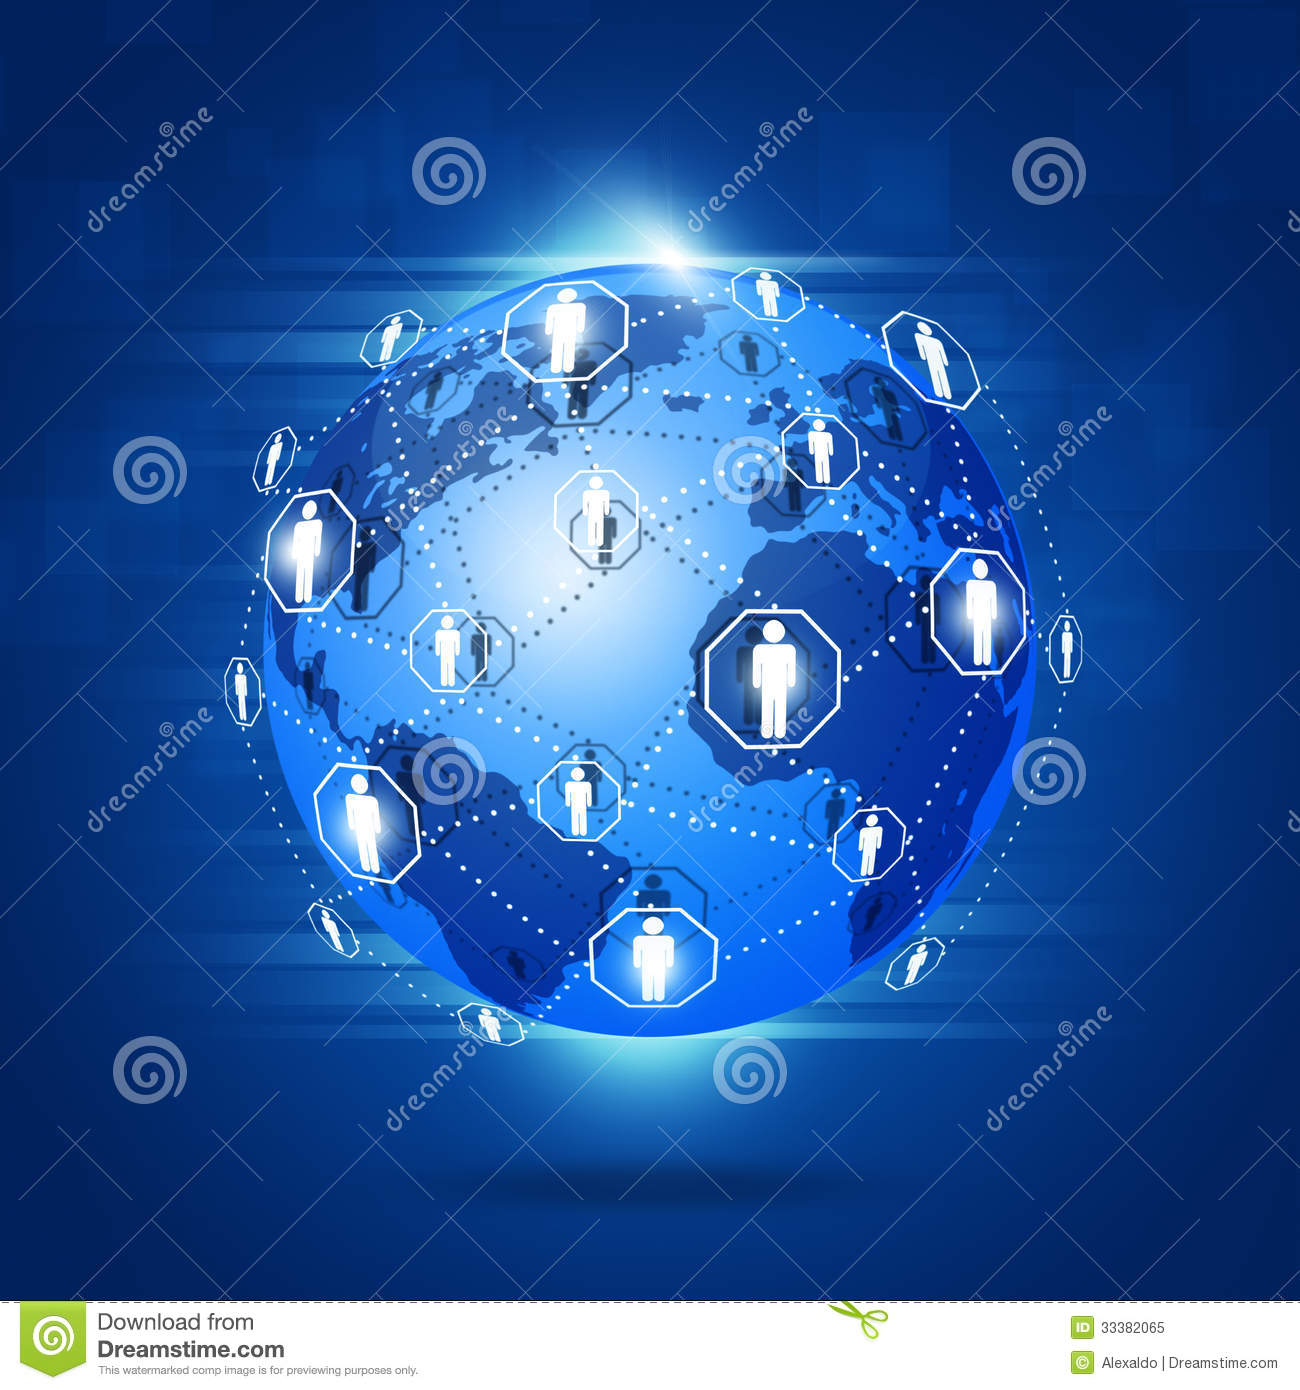 network connection technology connections global business rete globale collegamenti abstract royalty globe earth management map